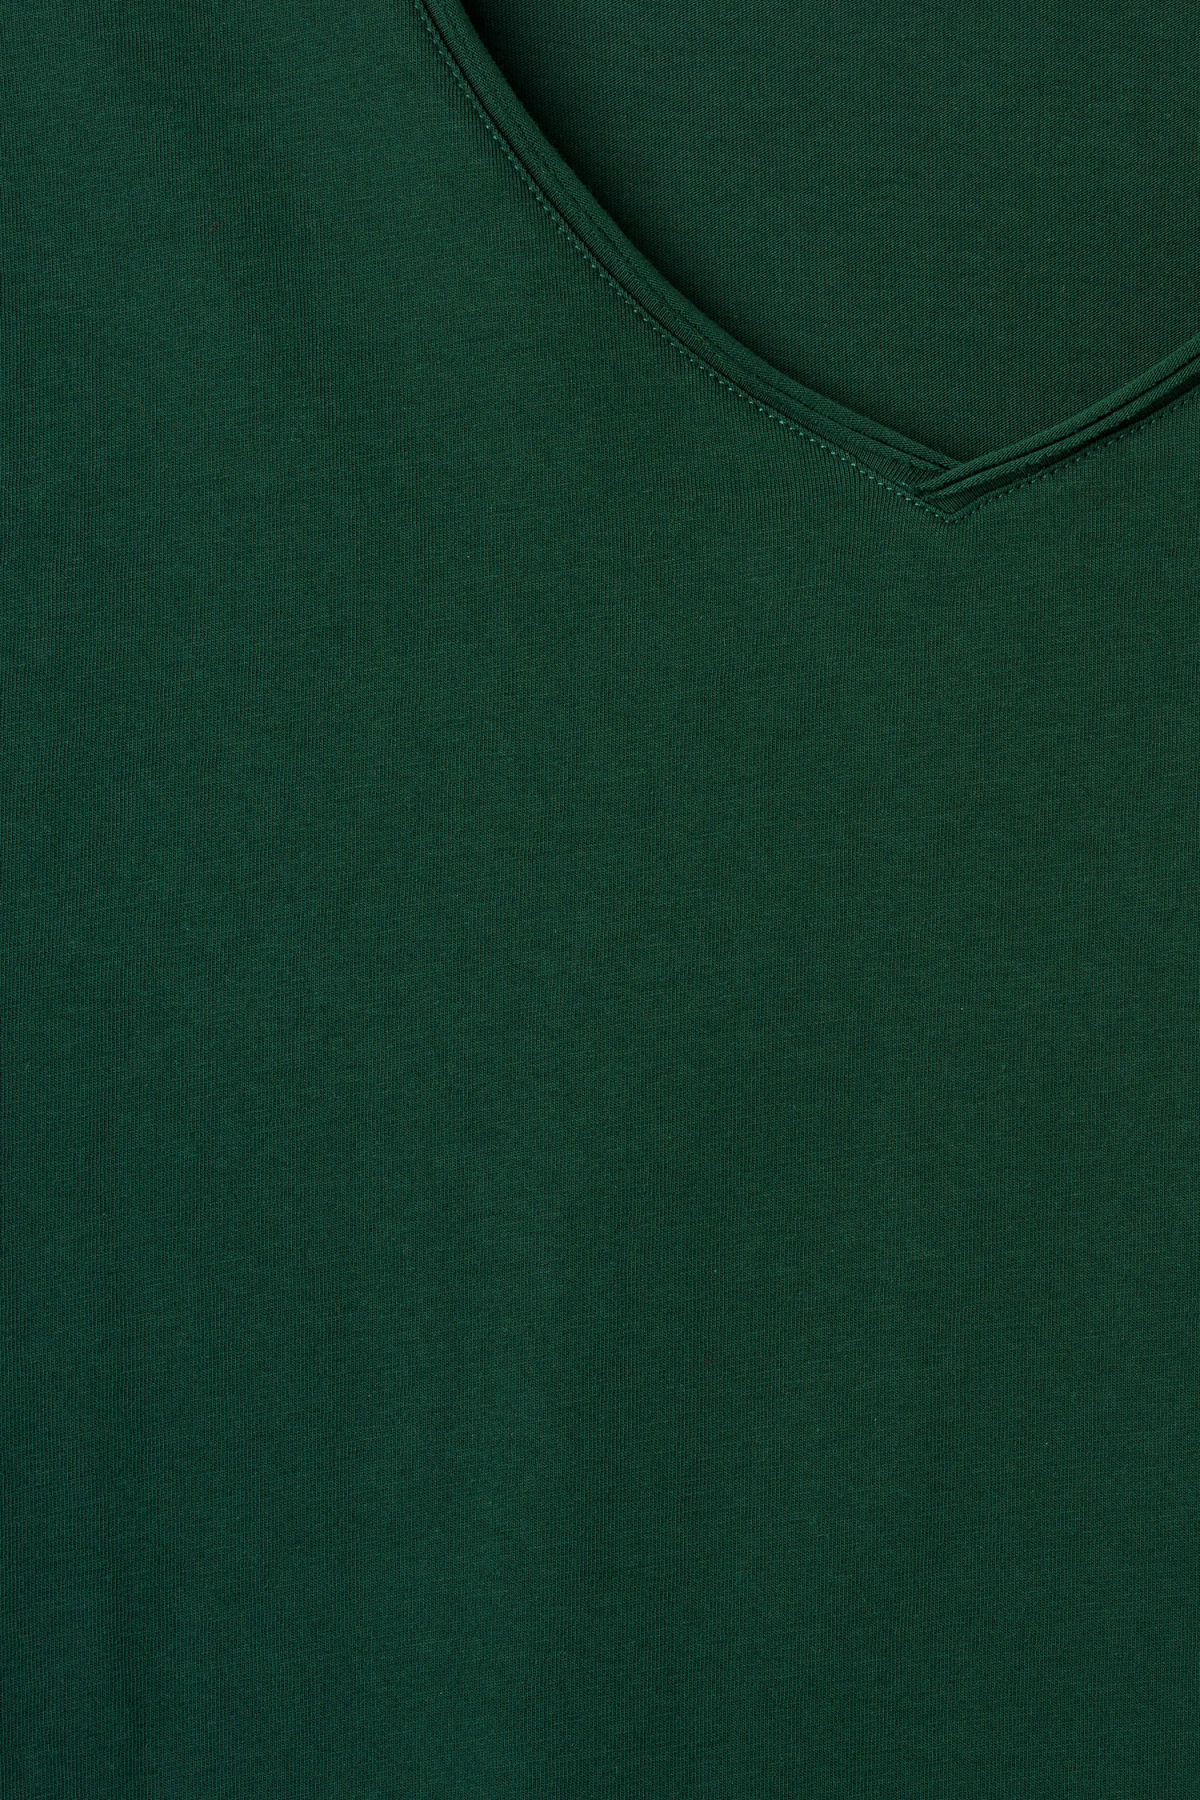 Detailed image of Weekday dark v-neck t-shirt in green